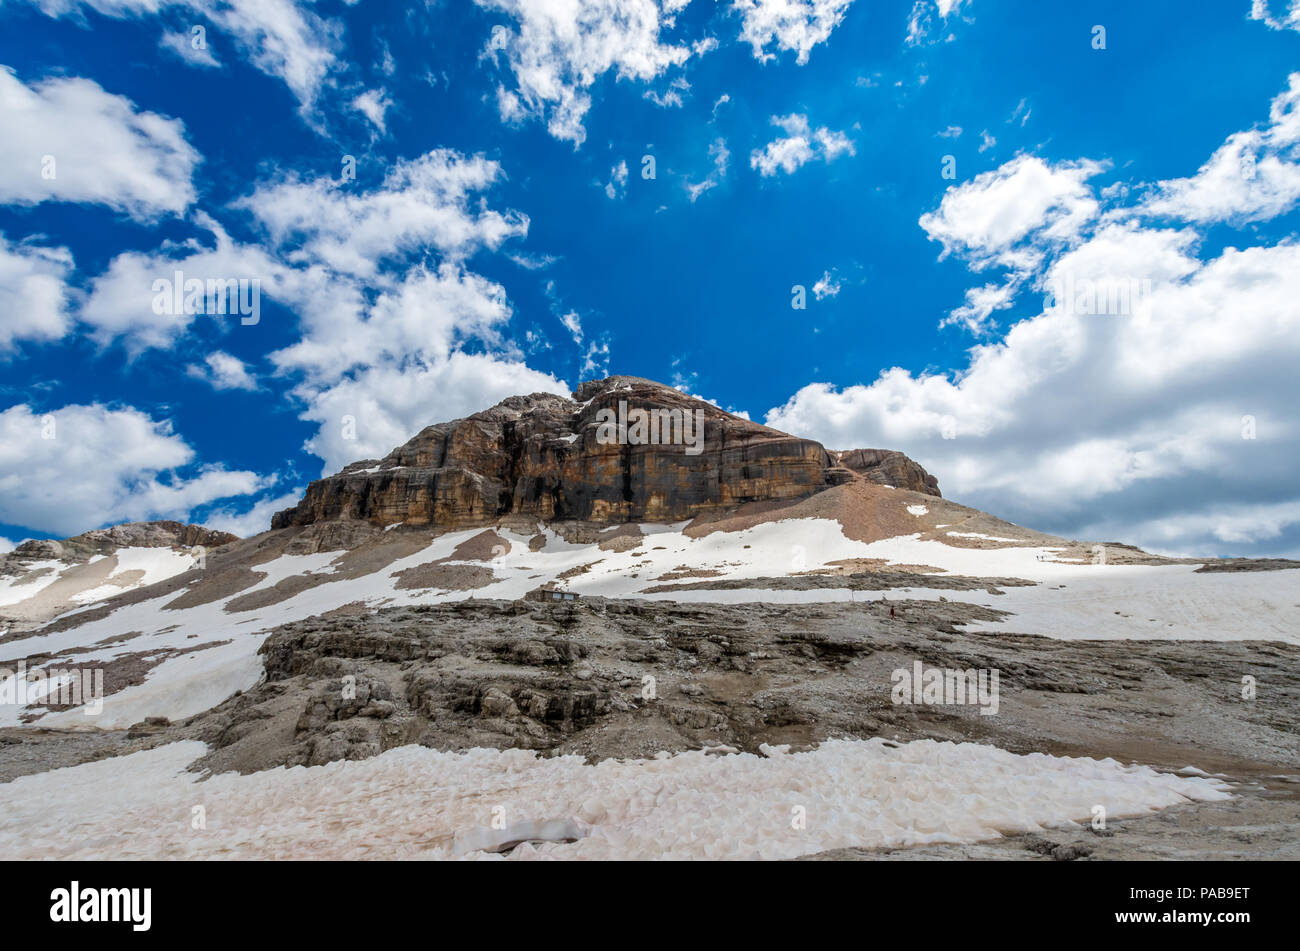 Piz Boe peak, 3152 m, in Sella massif, Dolomiti, Italy. View of rocky landscape from the hiking path. - Stock Image